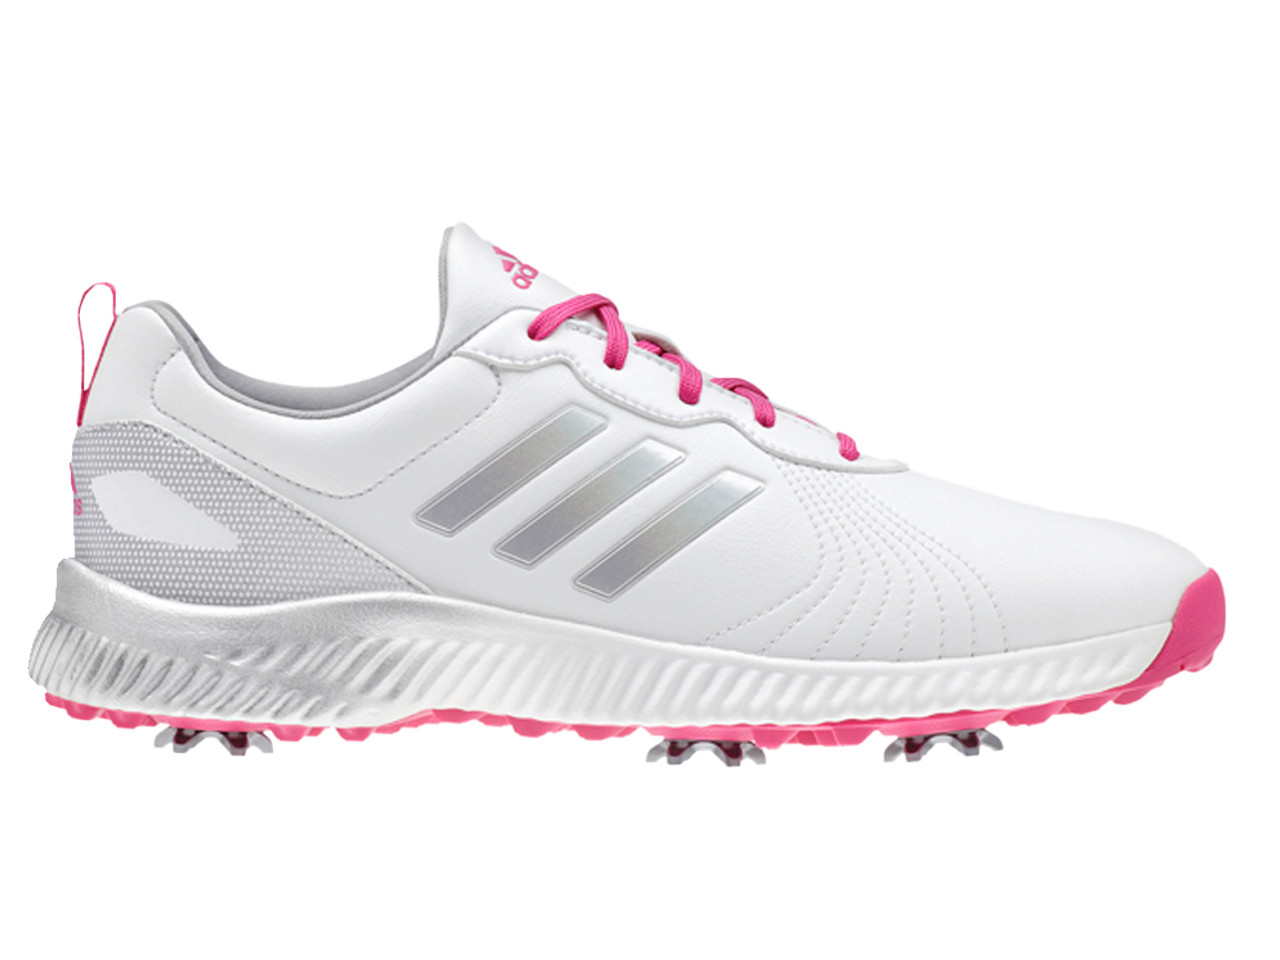 76a6bd552 Adidas Ladies Response Bounce Golf Shoes - White Magenta F18 ...